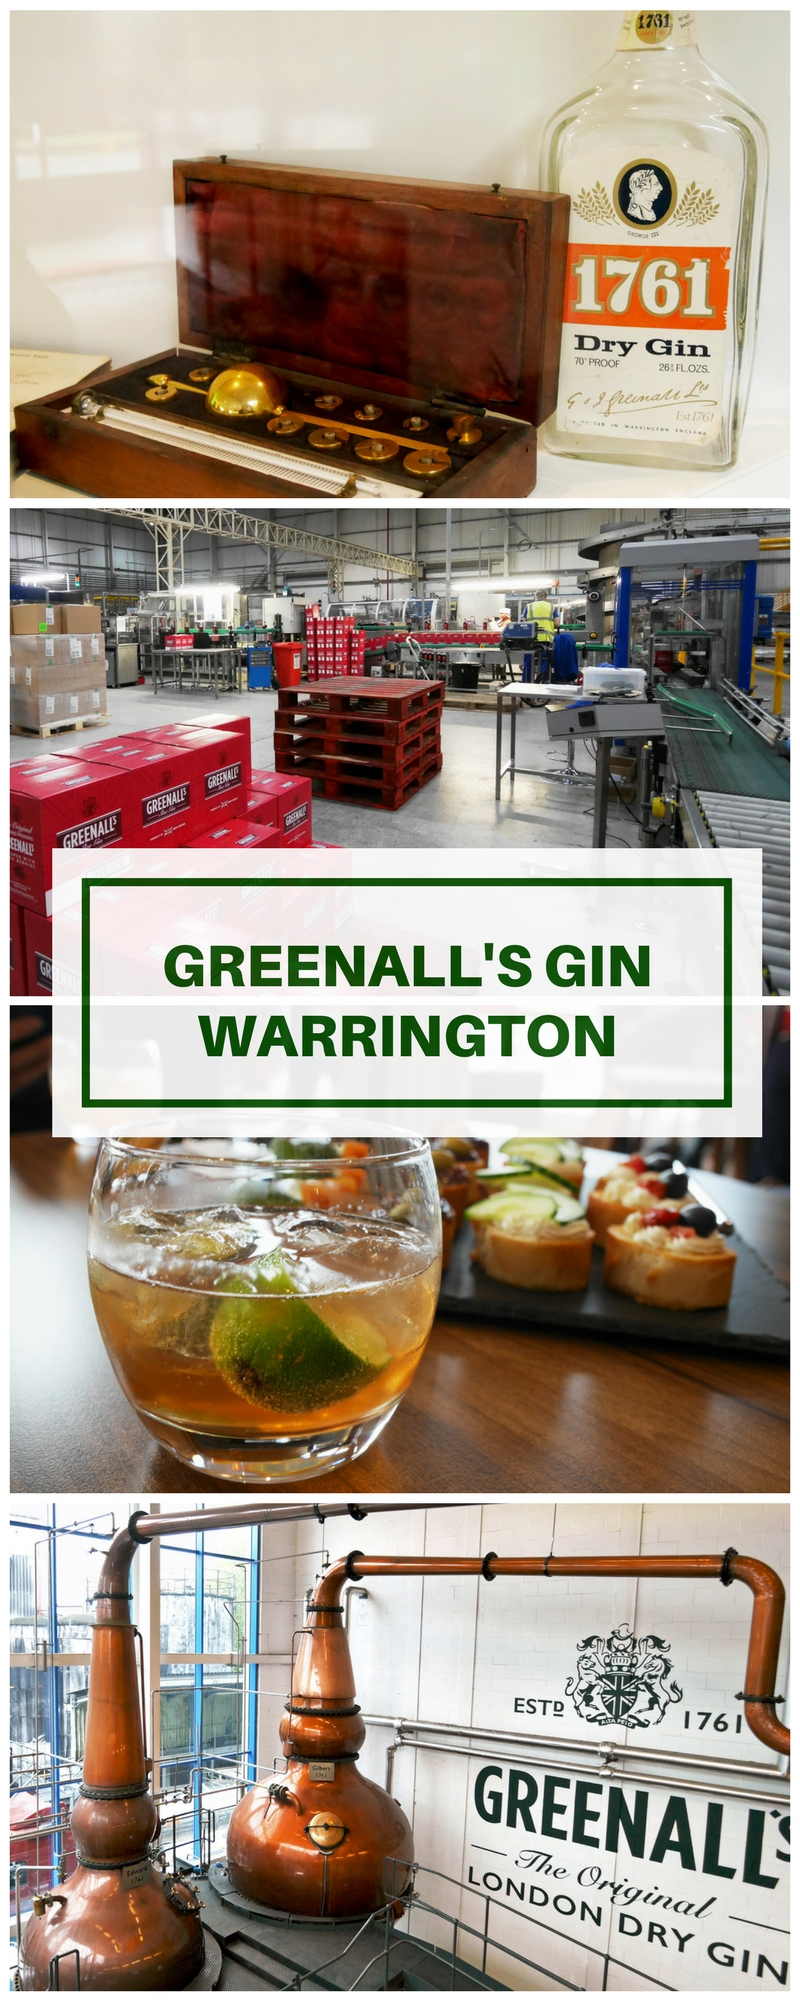 Greenall's Gin Distillery Sloe Gin and more in Warrington Greenall's